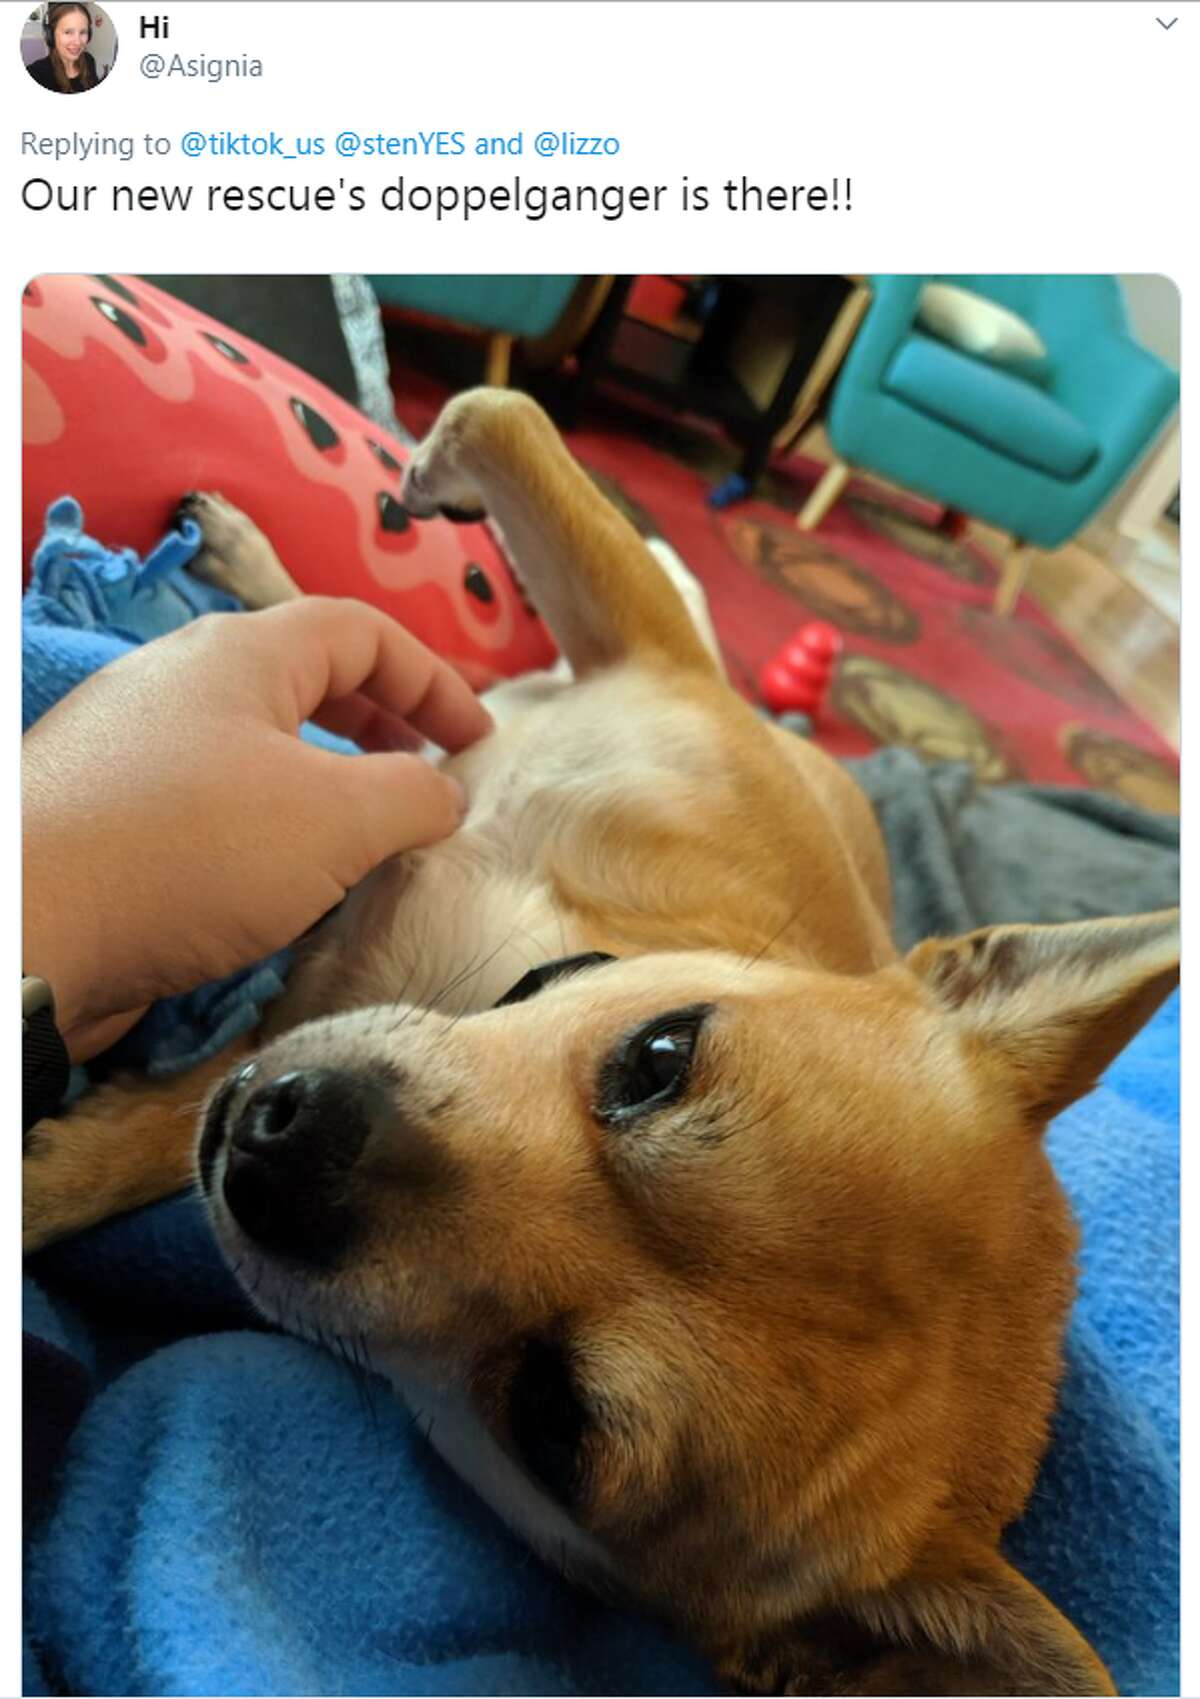 Short video sharing app TikTok shared Beaumont Animal Care's video to advertise a Memorial Day adoption event.